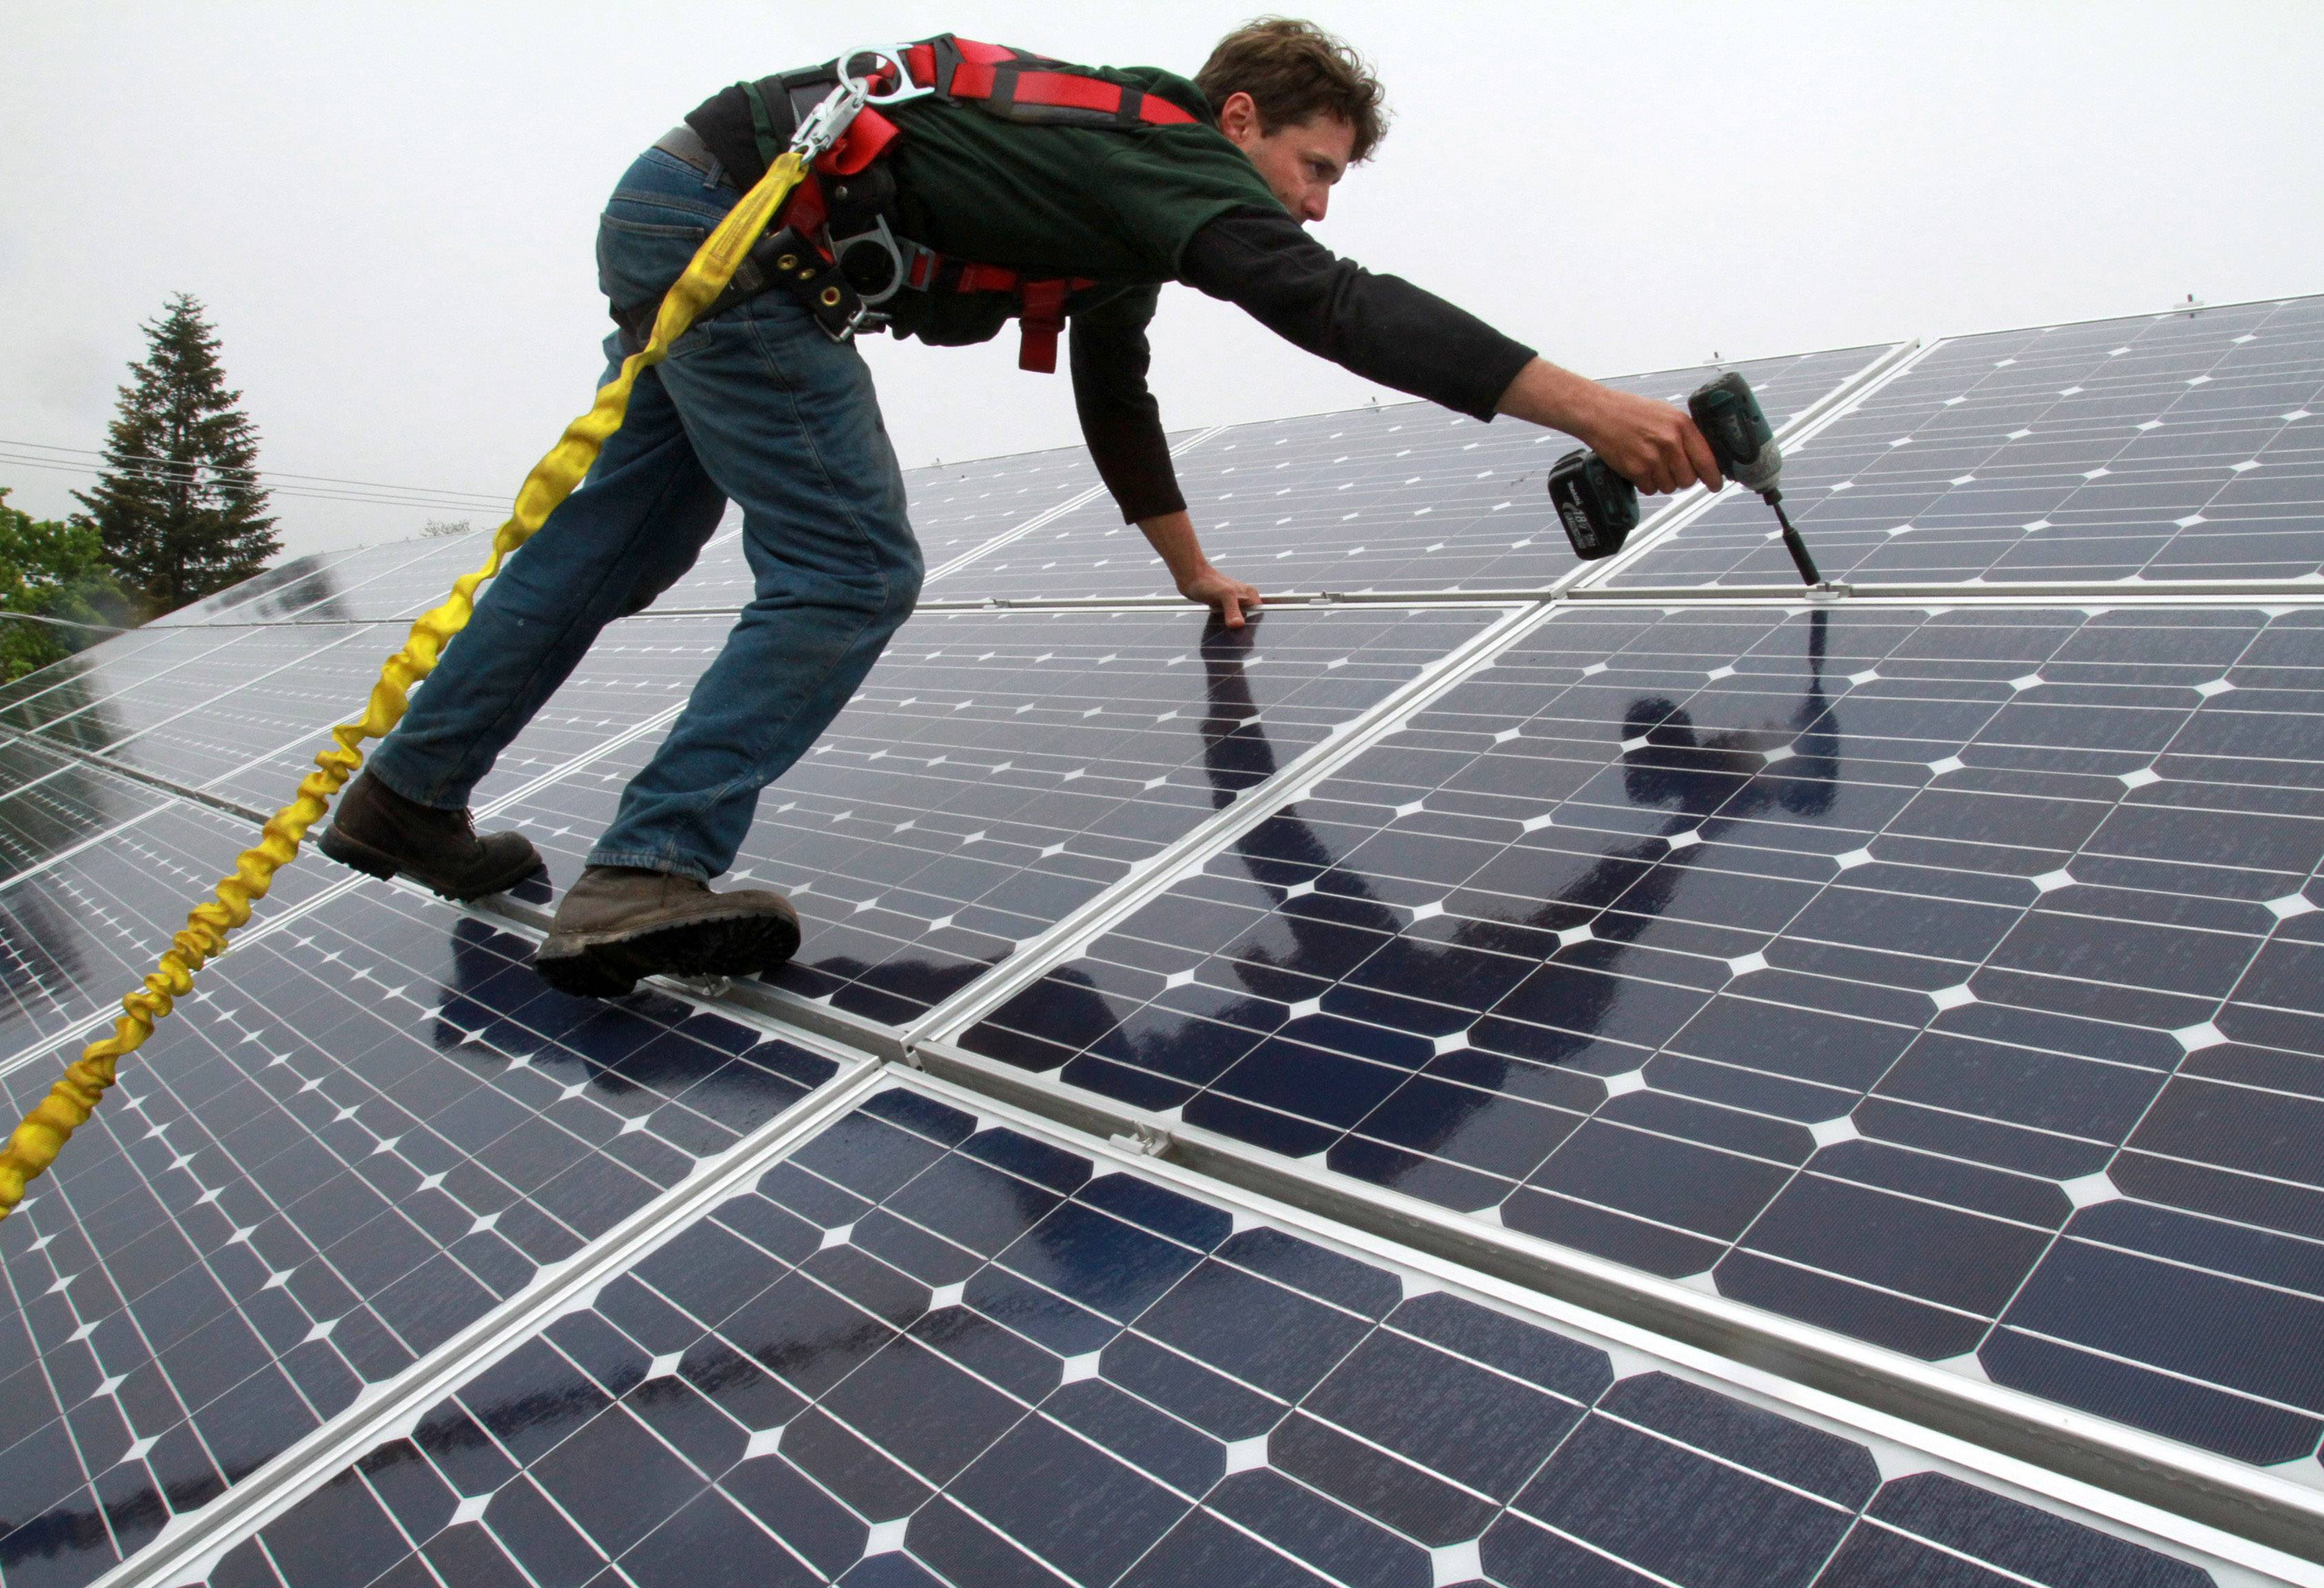 Hanover Park has joined a program that offers a 25 percent discount off the cost to install rooftop solar panels.